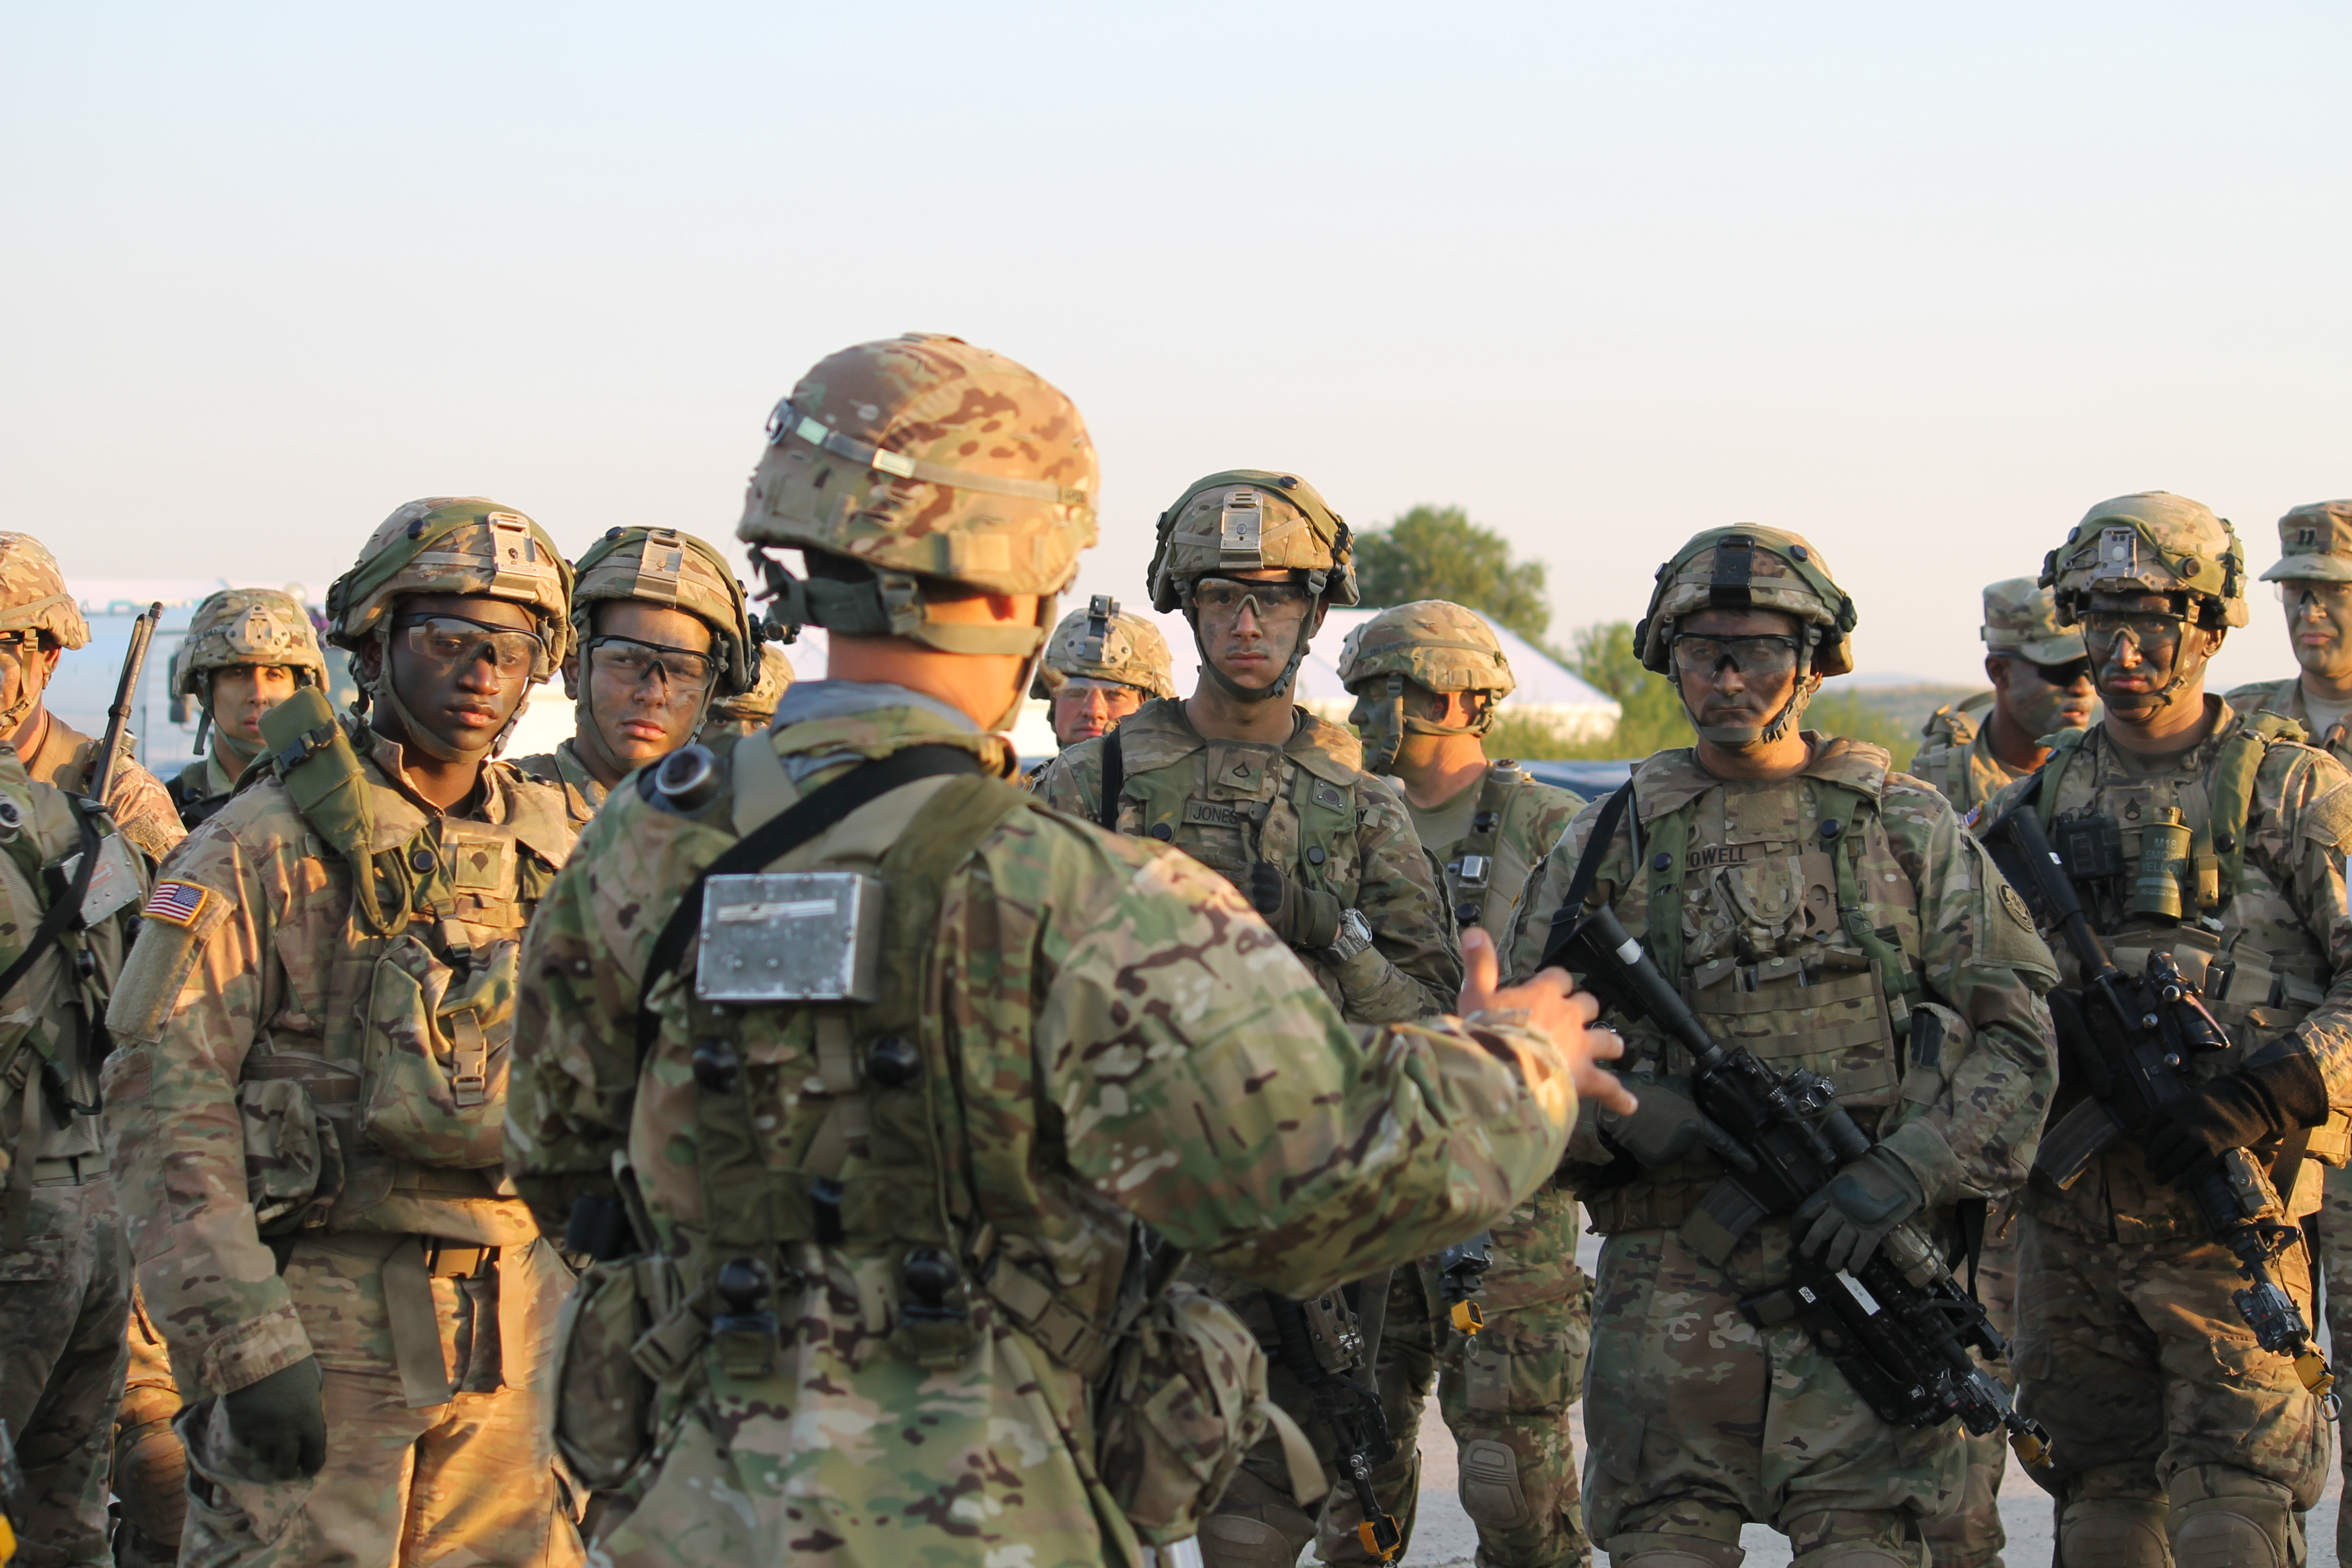 Troops in the U.S. Stryker unit discuss the mission ahead once on the ground. (Jen Judson/Staff)